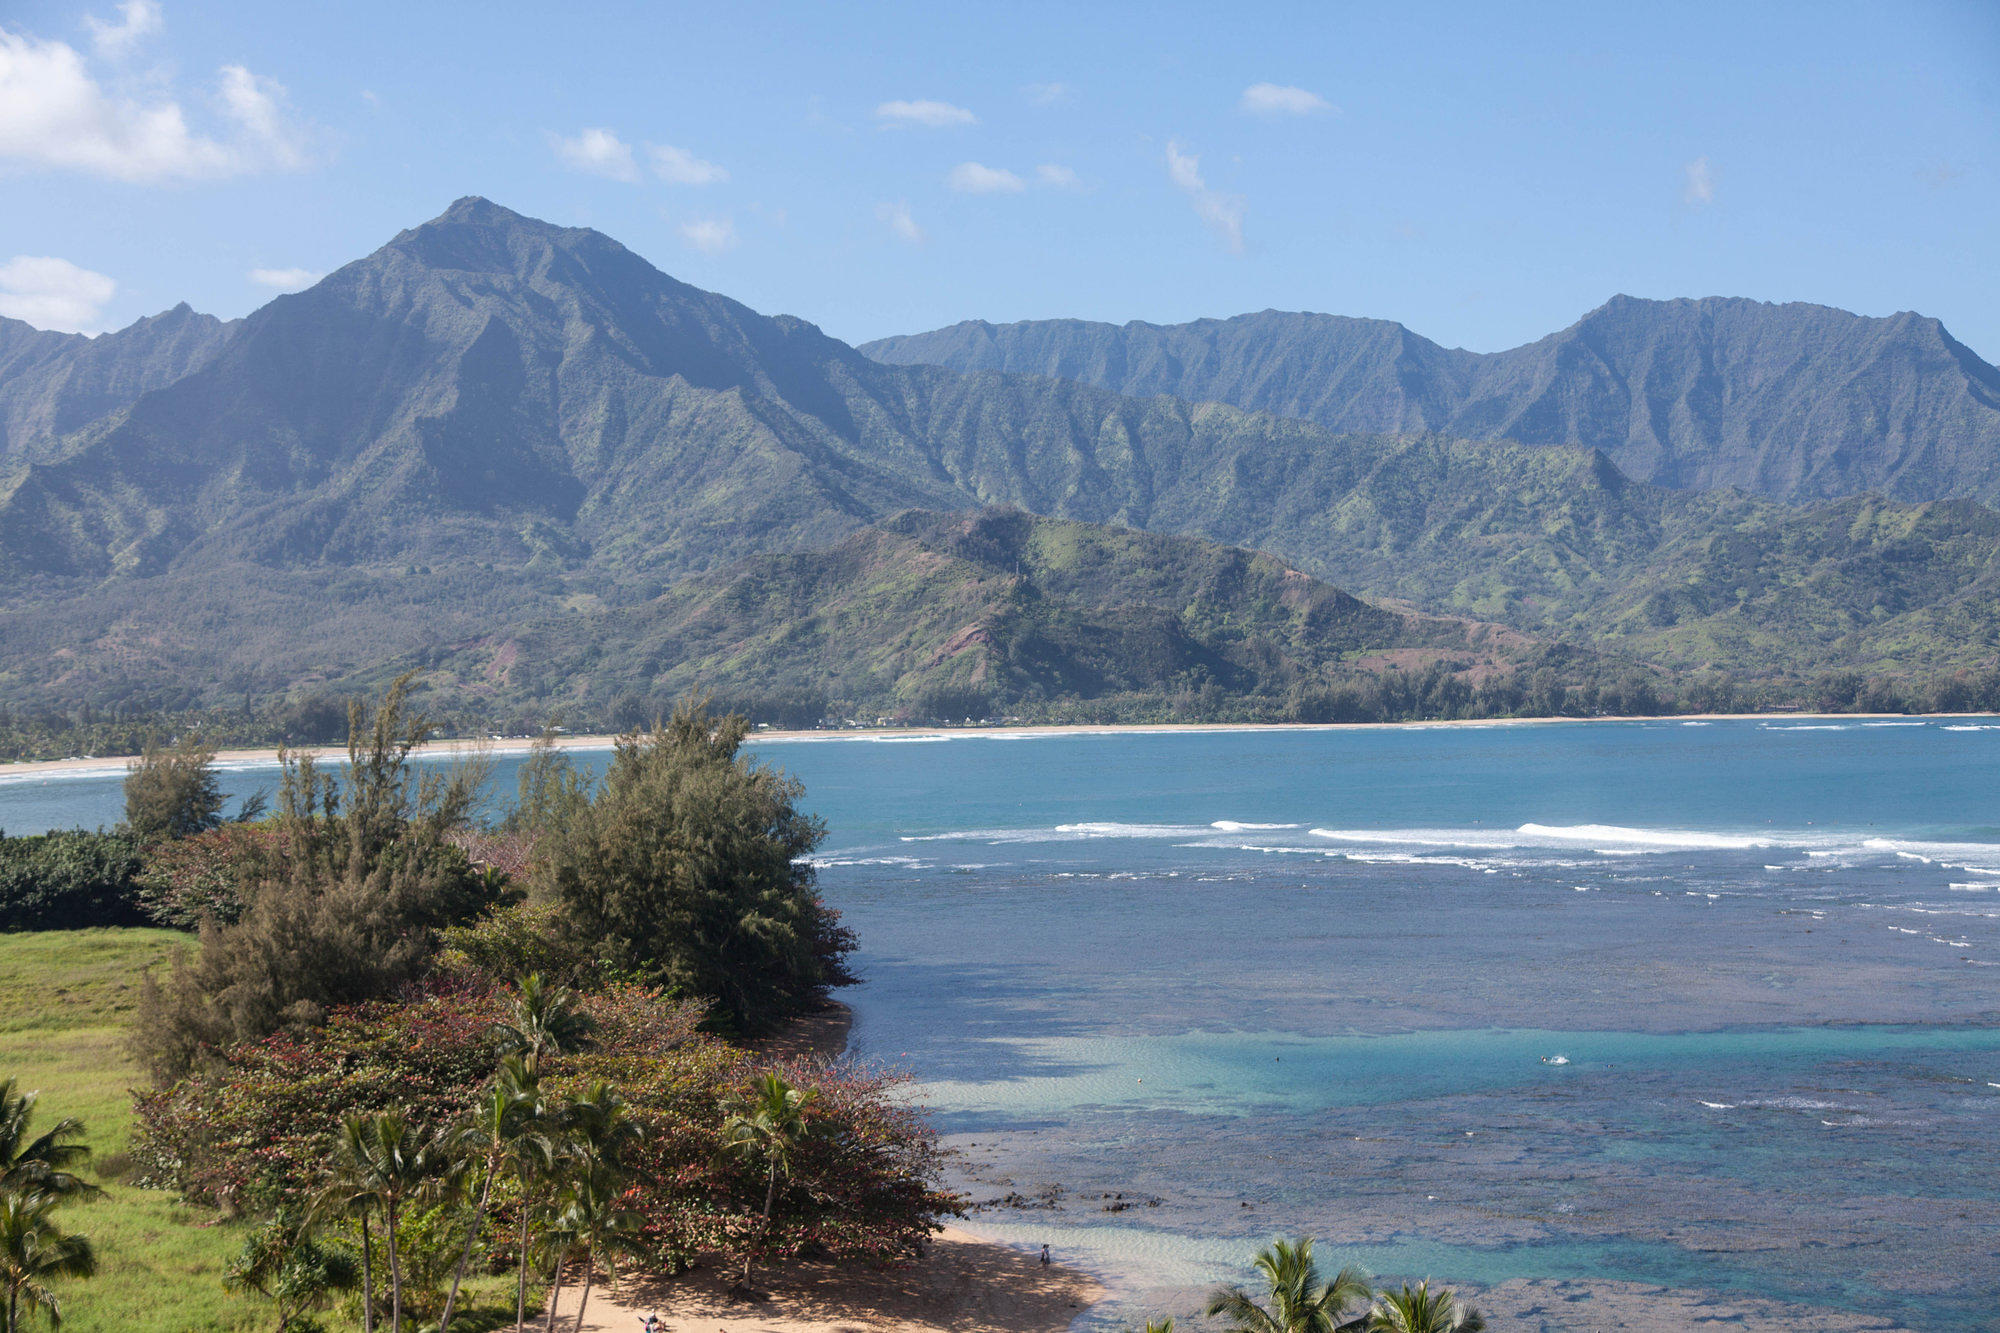 The view over Hanalei Bay and mountains from the Princeville Resort